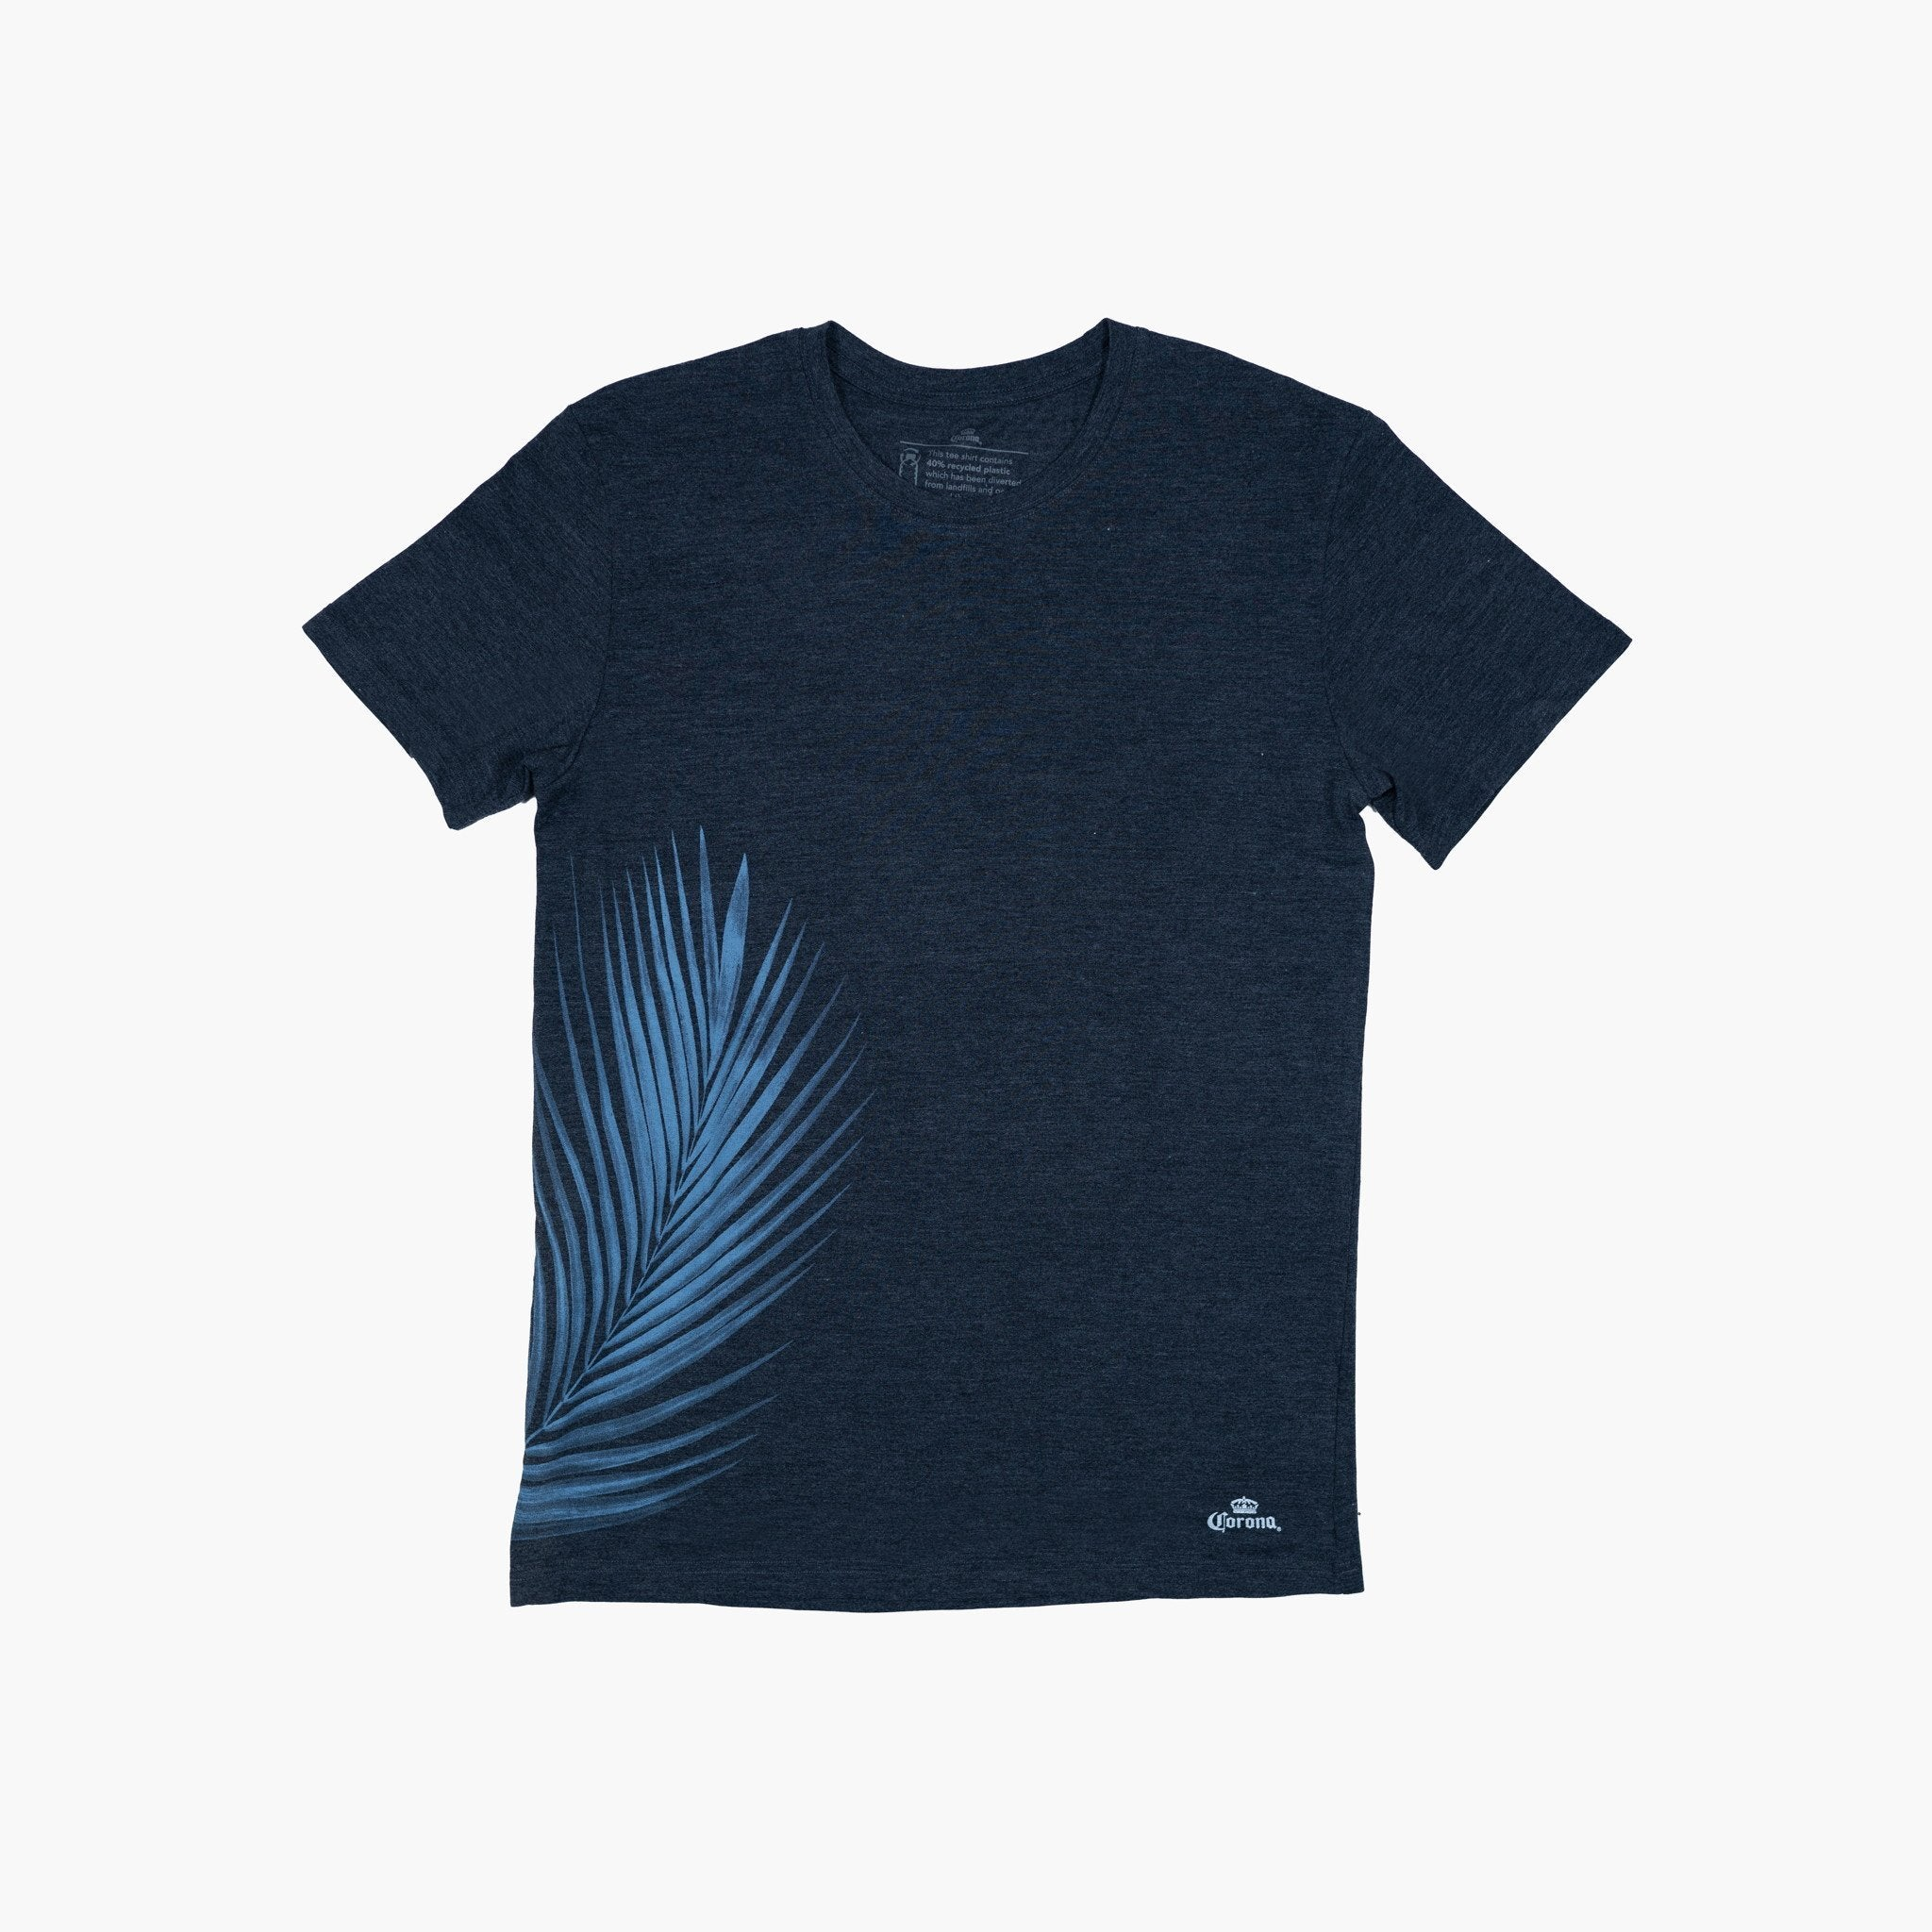 Paradise Tee - Charcoal Heather